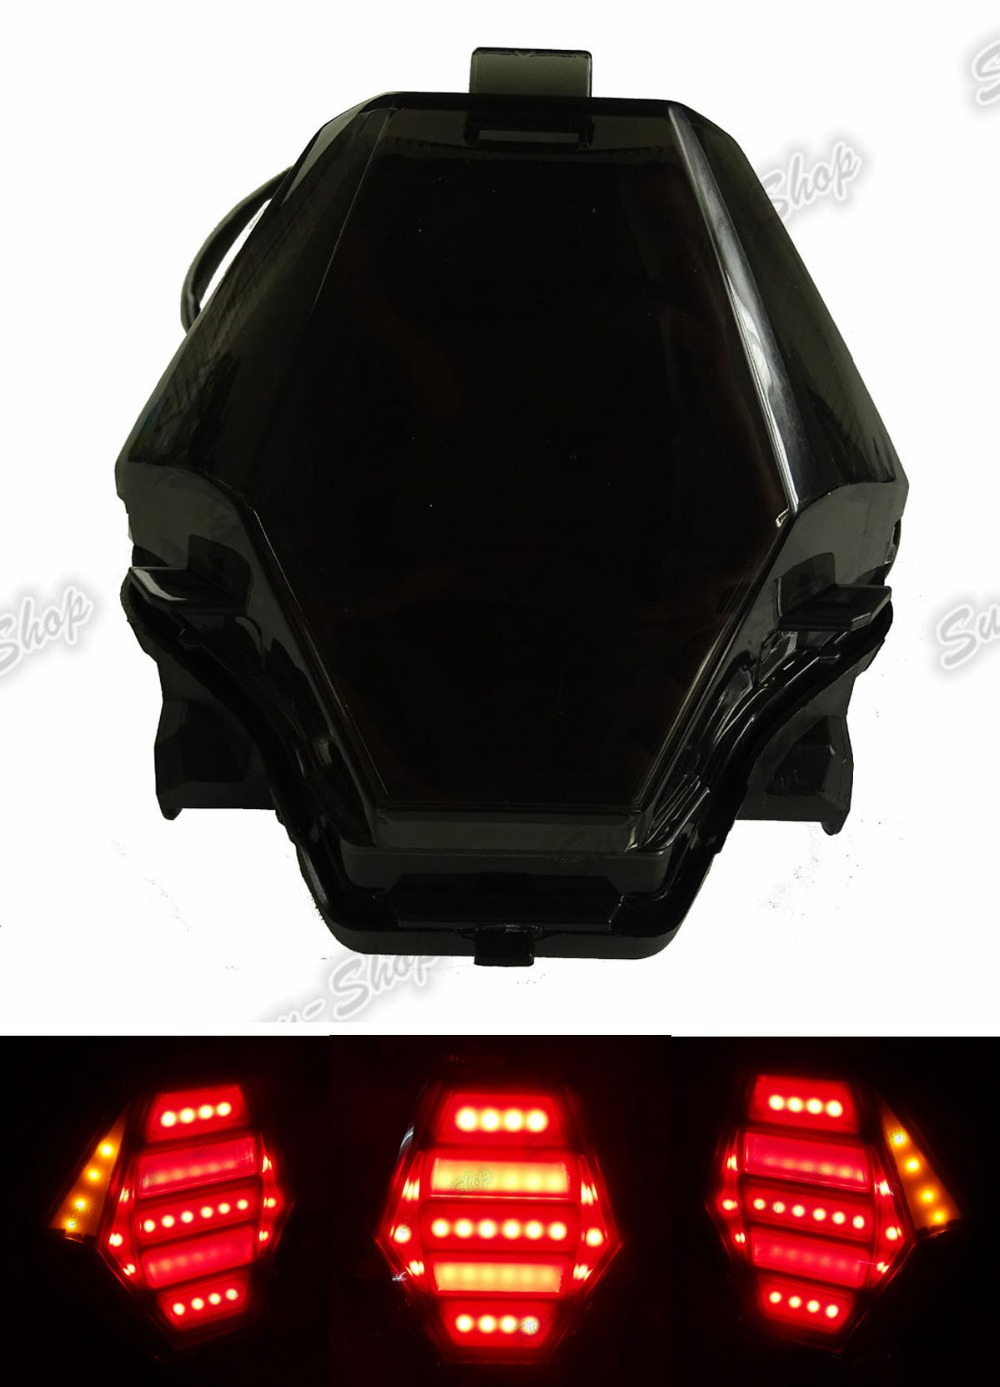 Motorcycle Rear Taillight Tail Brake Turn Signals Integrated Led Light For 2013 2014 2015 2016 Yamaha MT-07 MT07 FZ-07 FZ07 aftermarket free shipping motorcycle parts led tail brake light turn signals for yamaha 2004 2009 fz6 fazer 600 clear